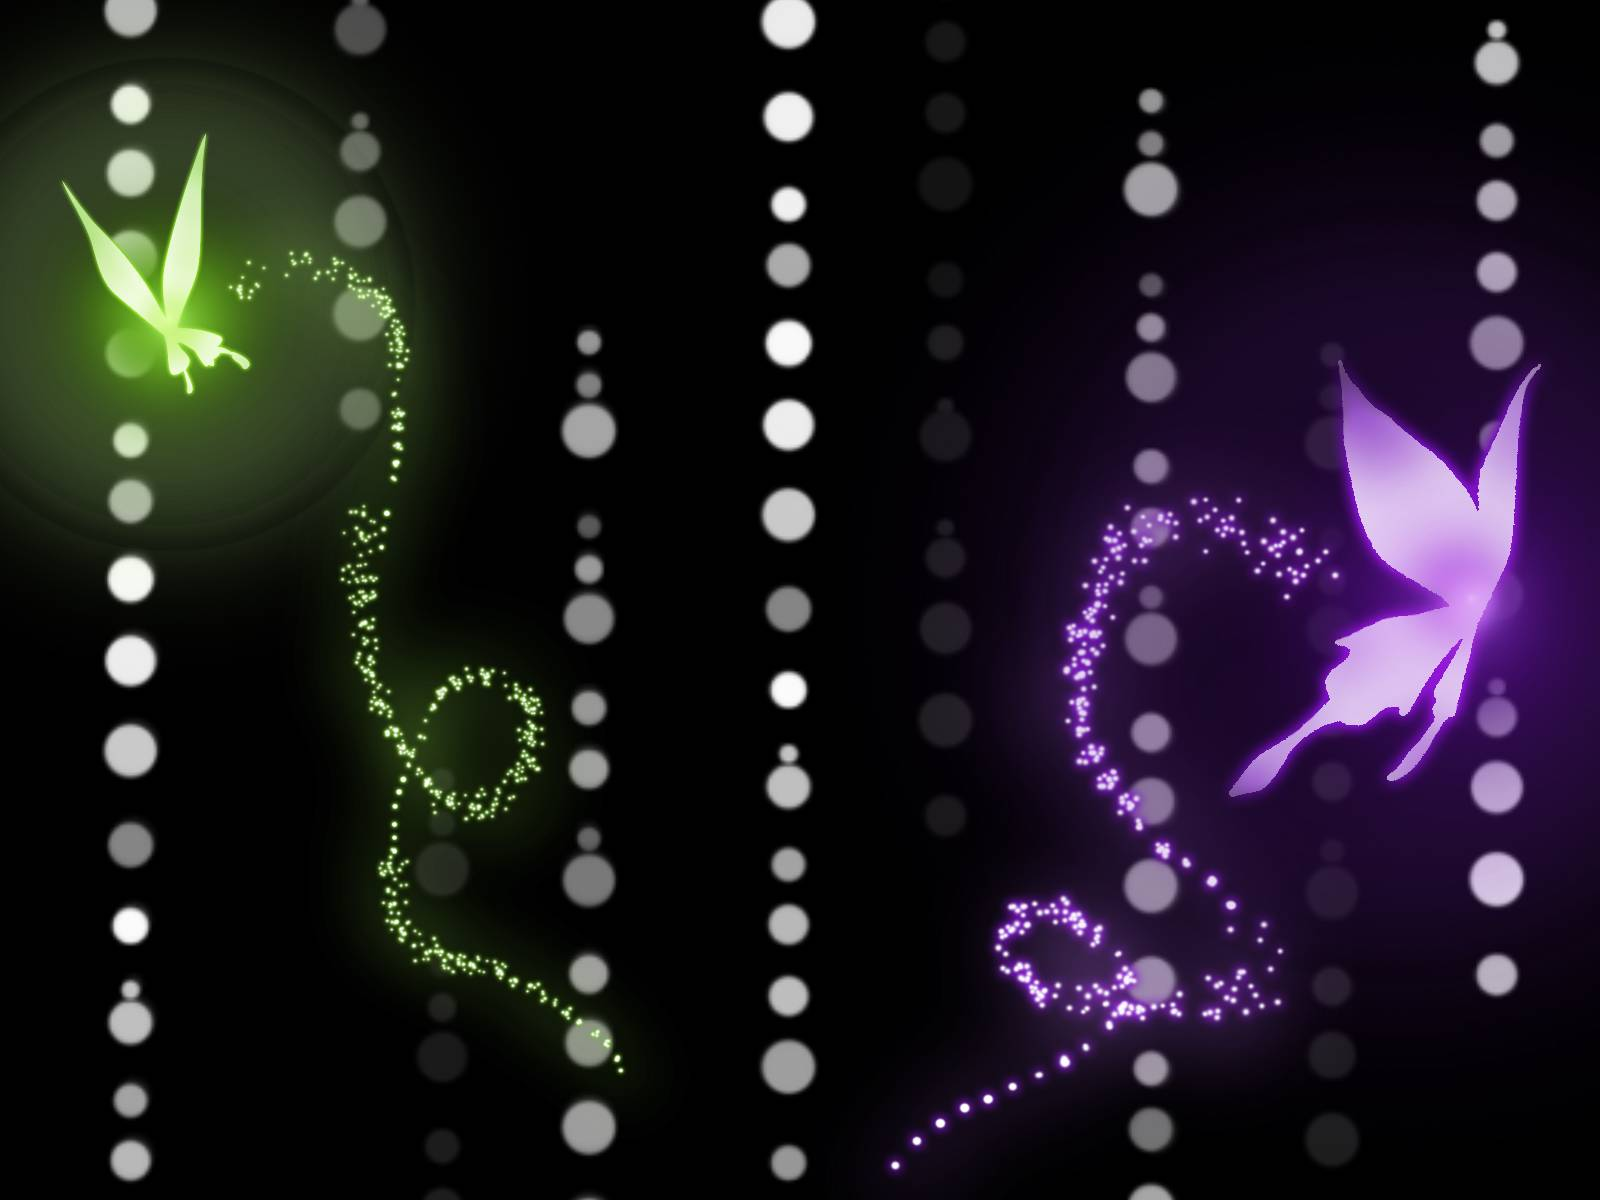 Wallpapers For Butterfly Wallpaper Desktop With Animation